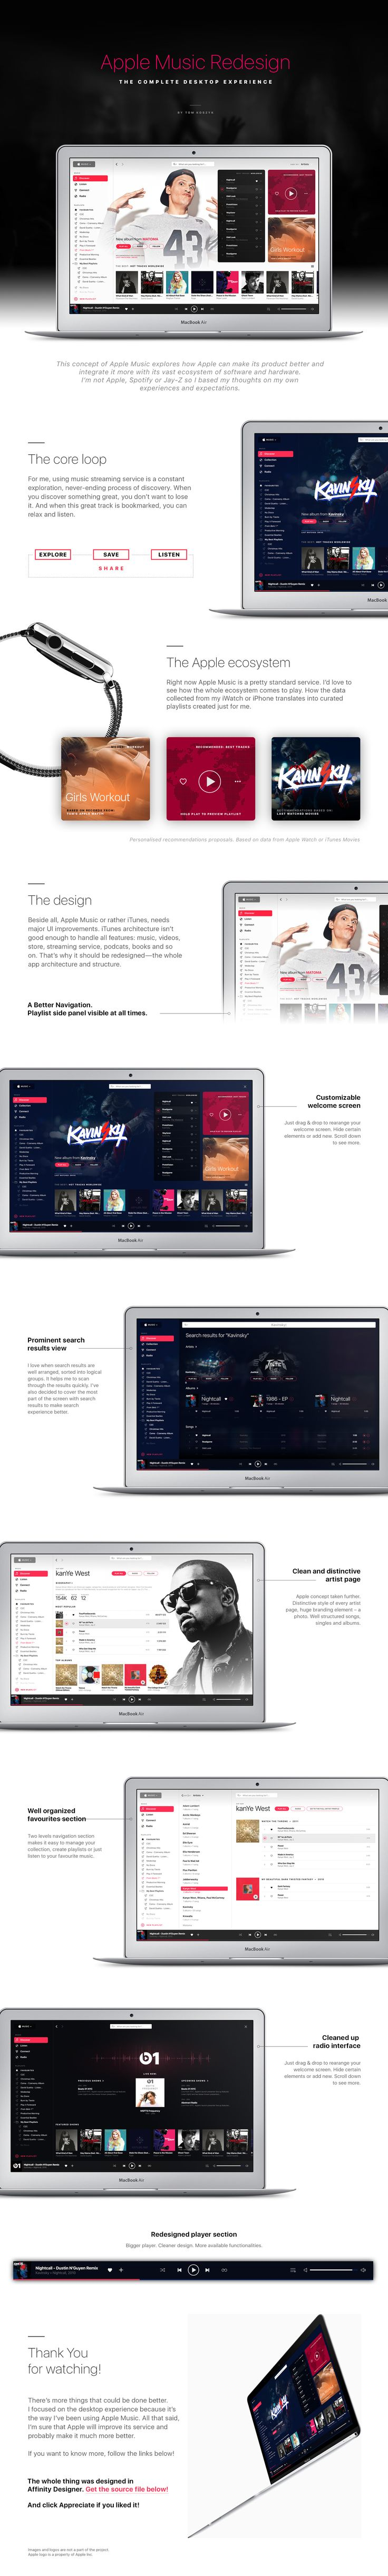 Apple Music Redesign concept on Behance